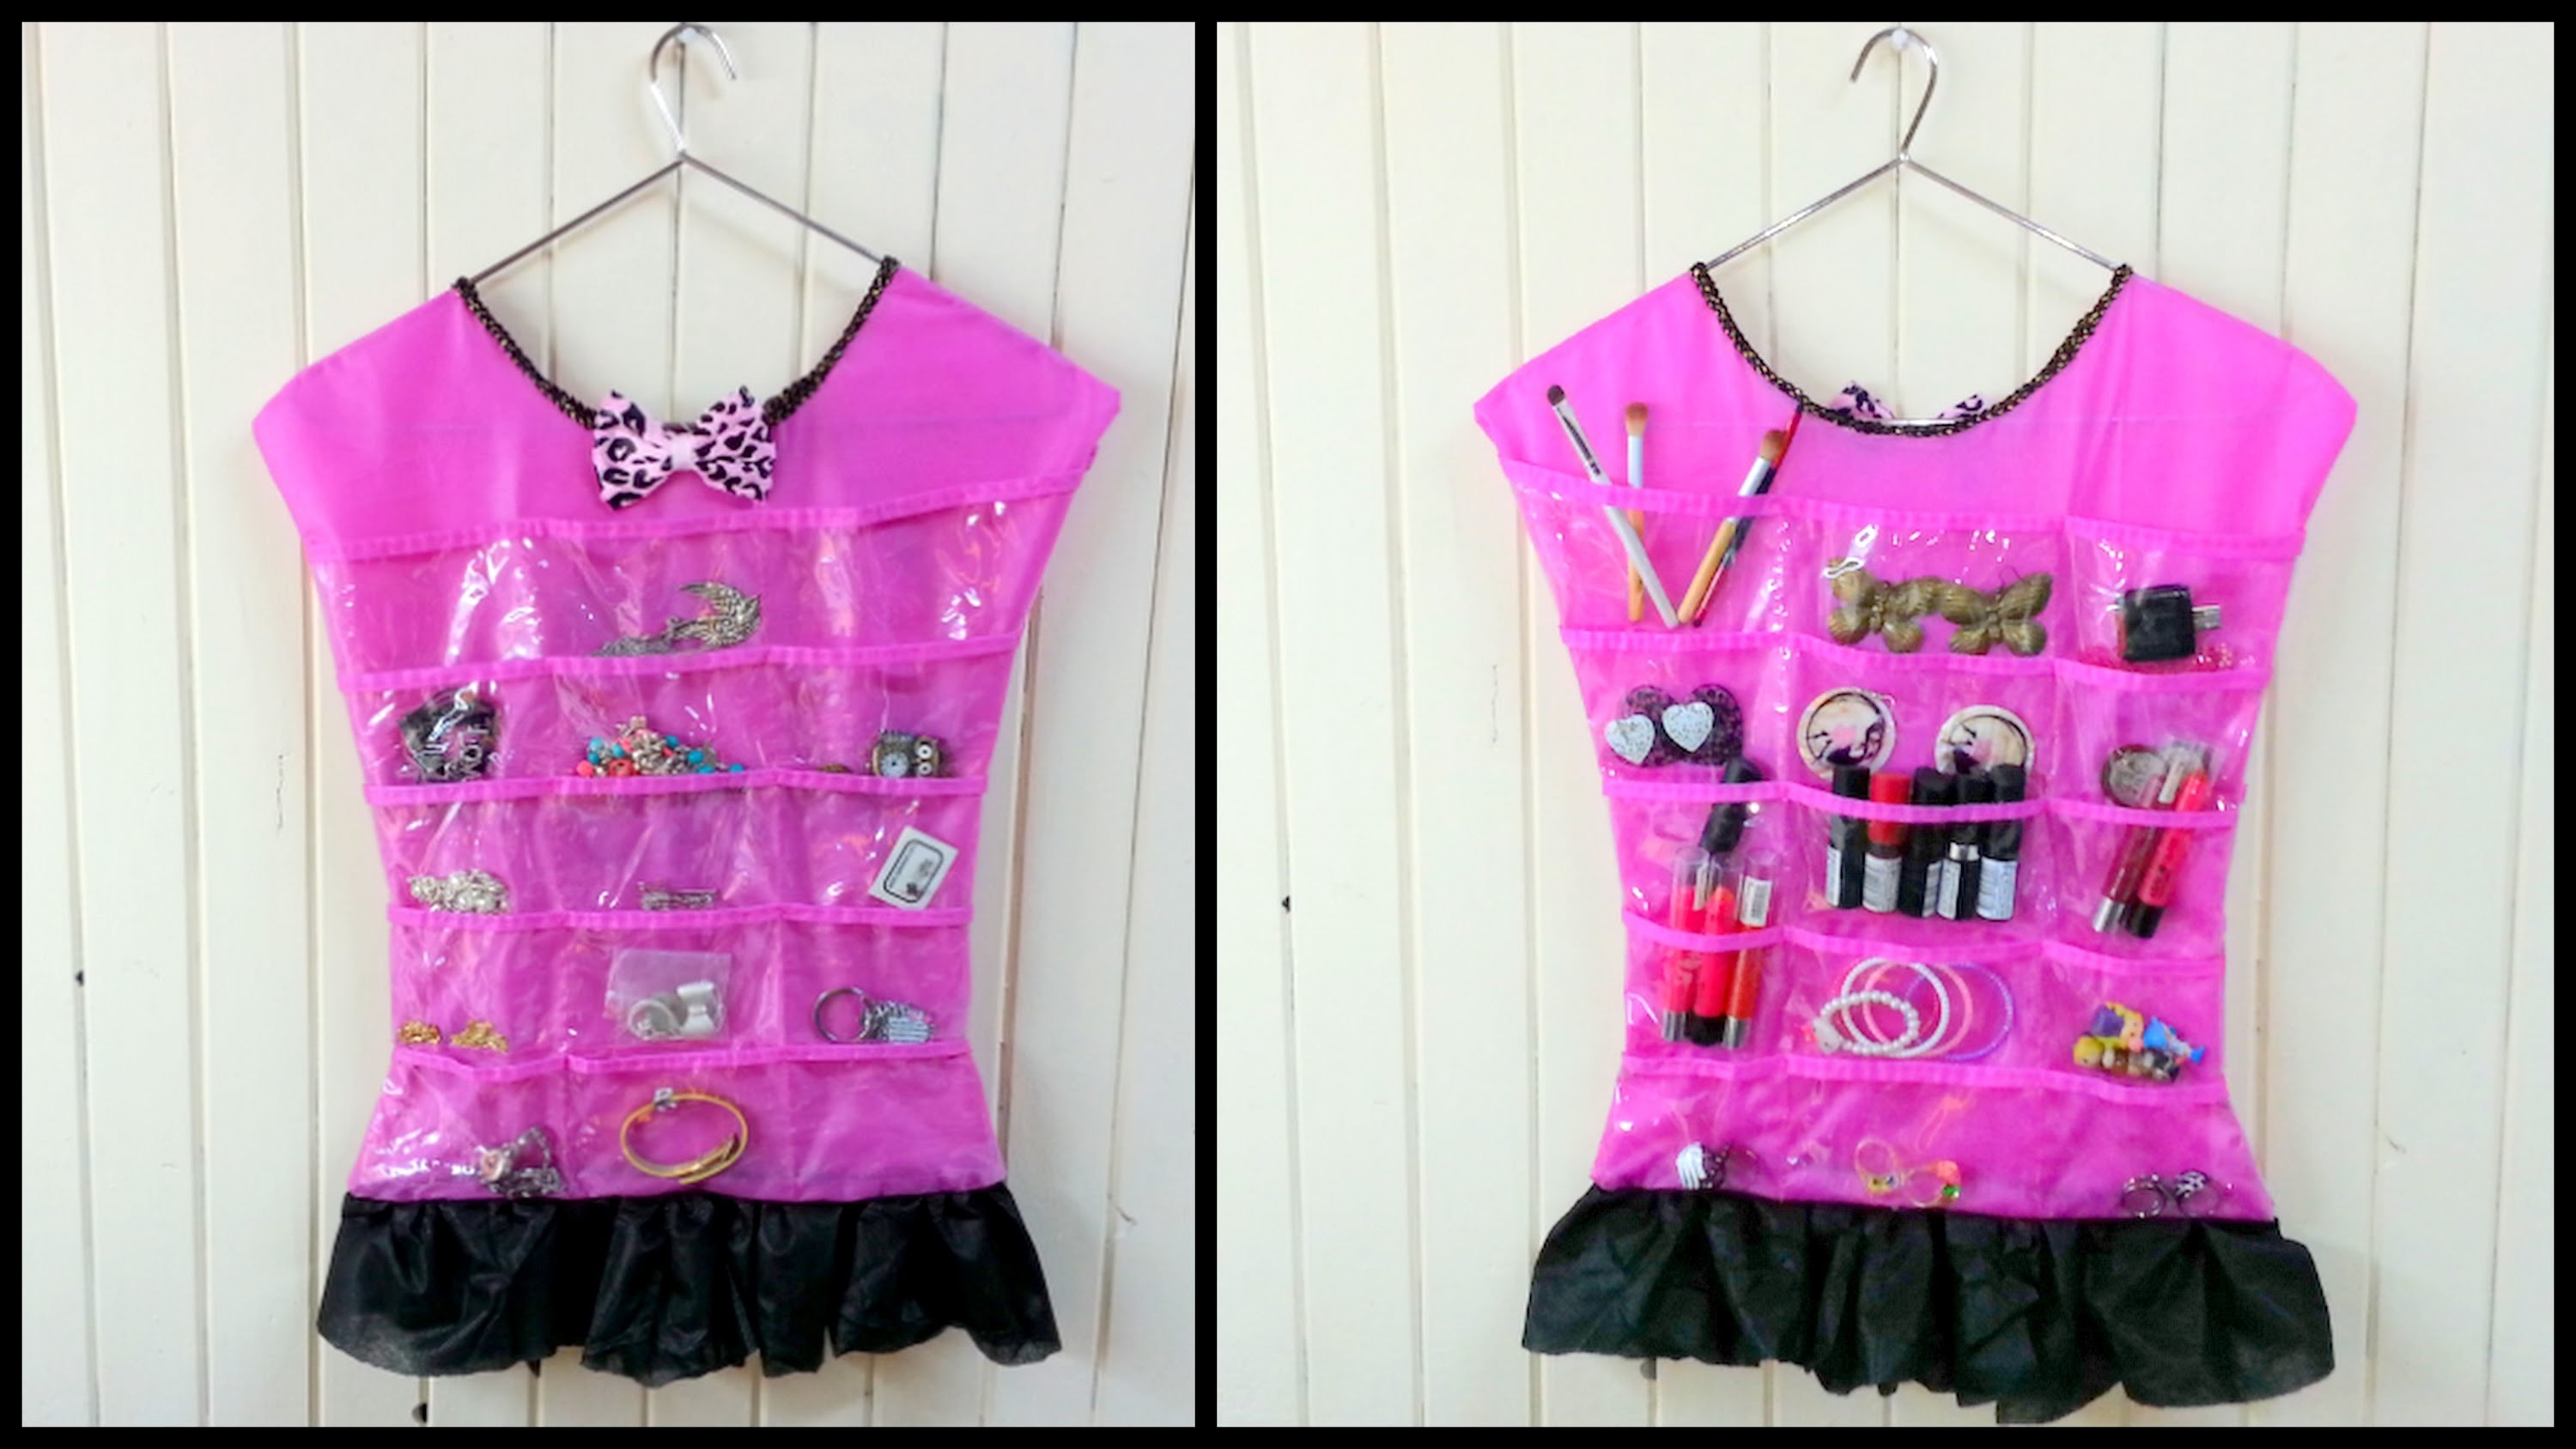 Diy:vestido organizador dress organizer